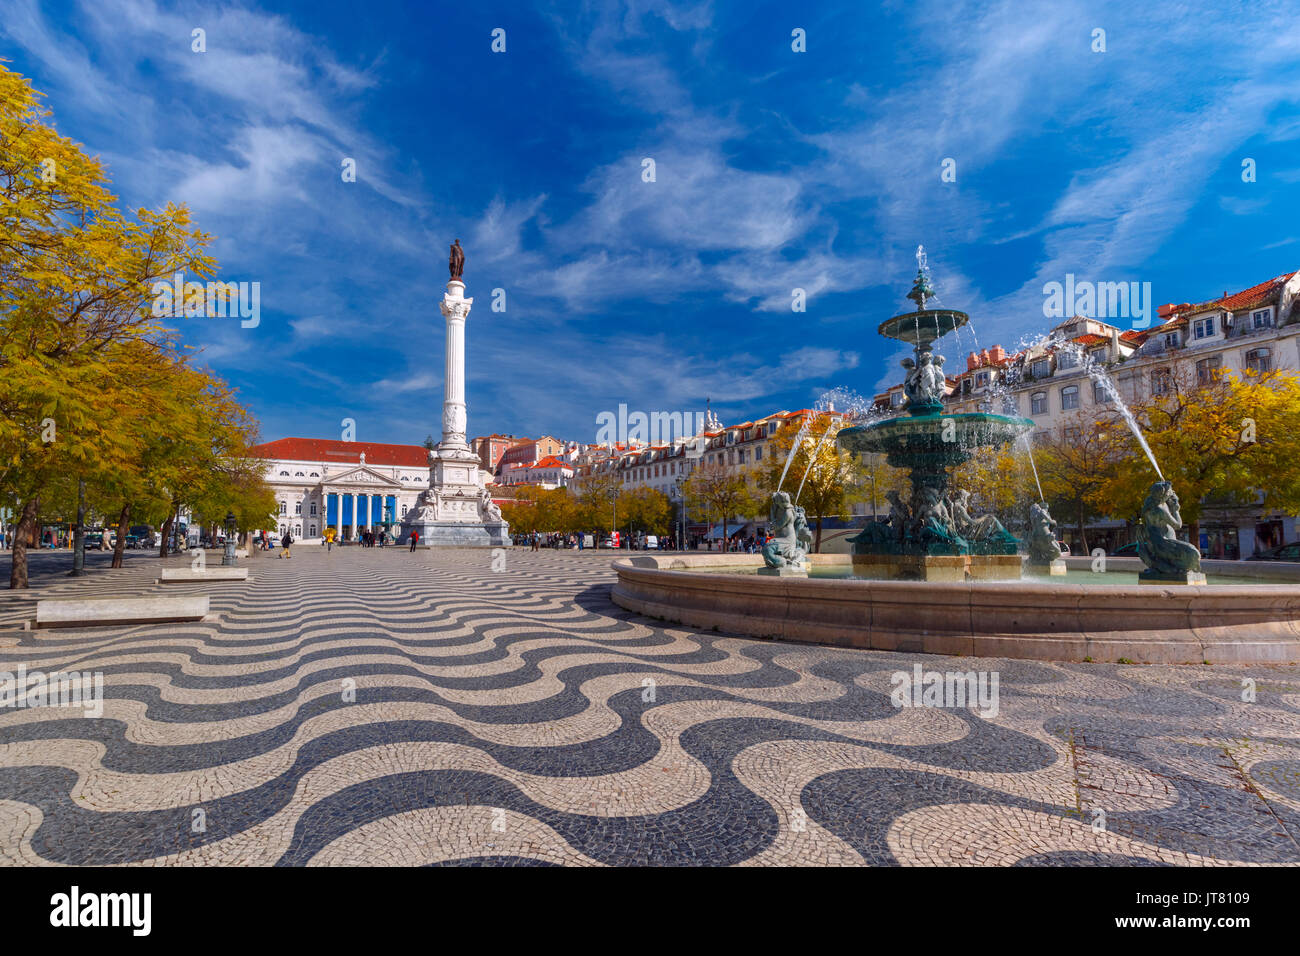 Rossio square with wavy pattern, Lisbon, Portugal - Stock Image